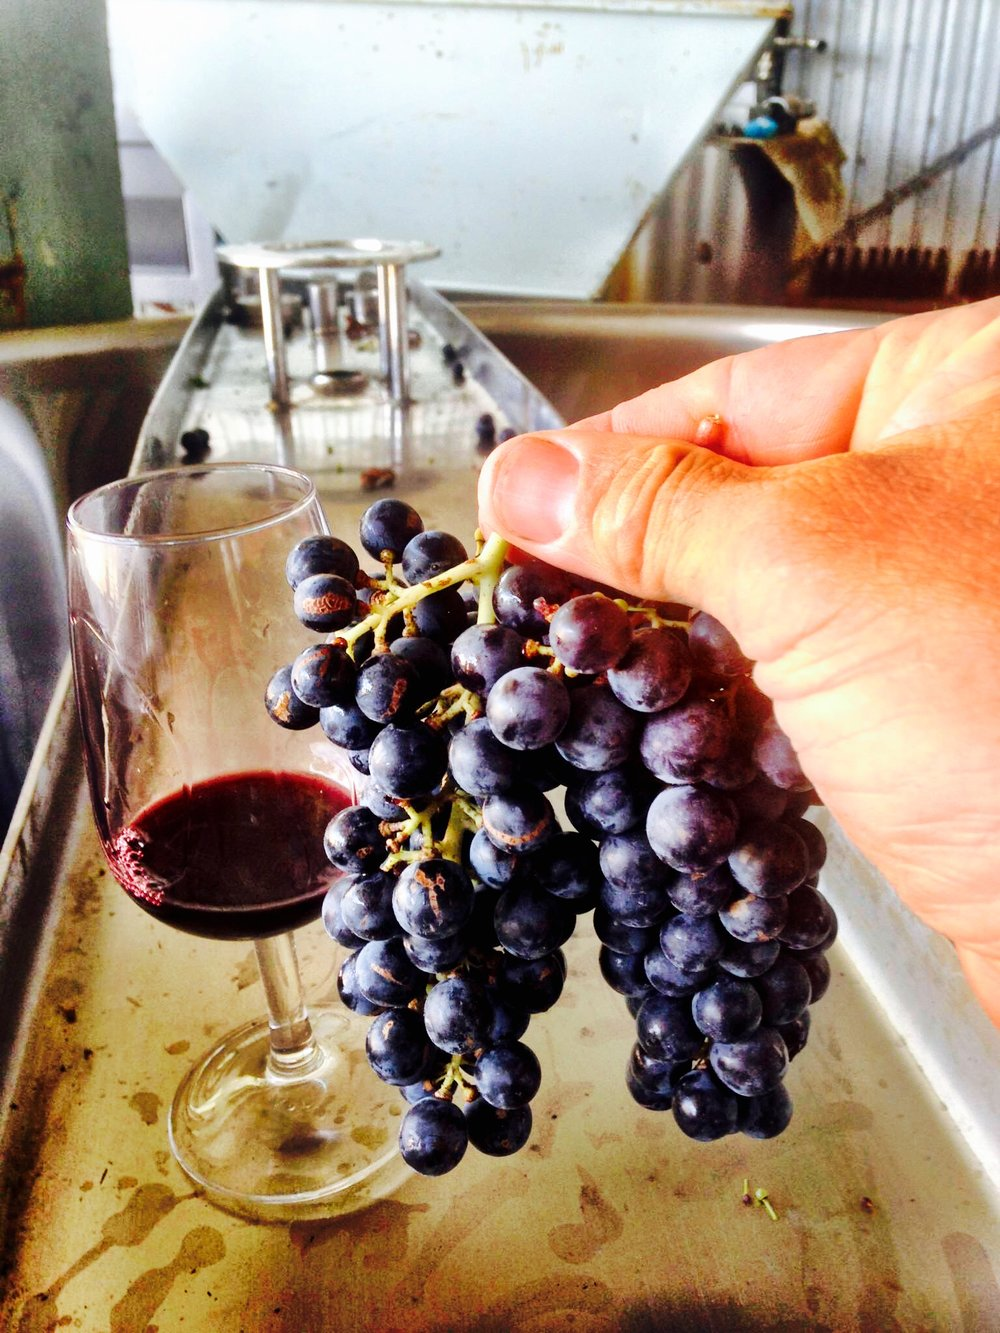 The 2016 Vintage (in the glass) and the 2017 vintage (just after picking)